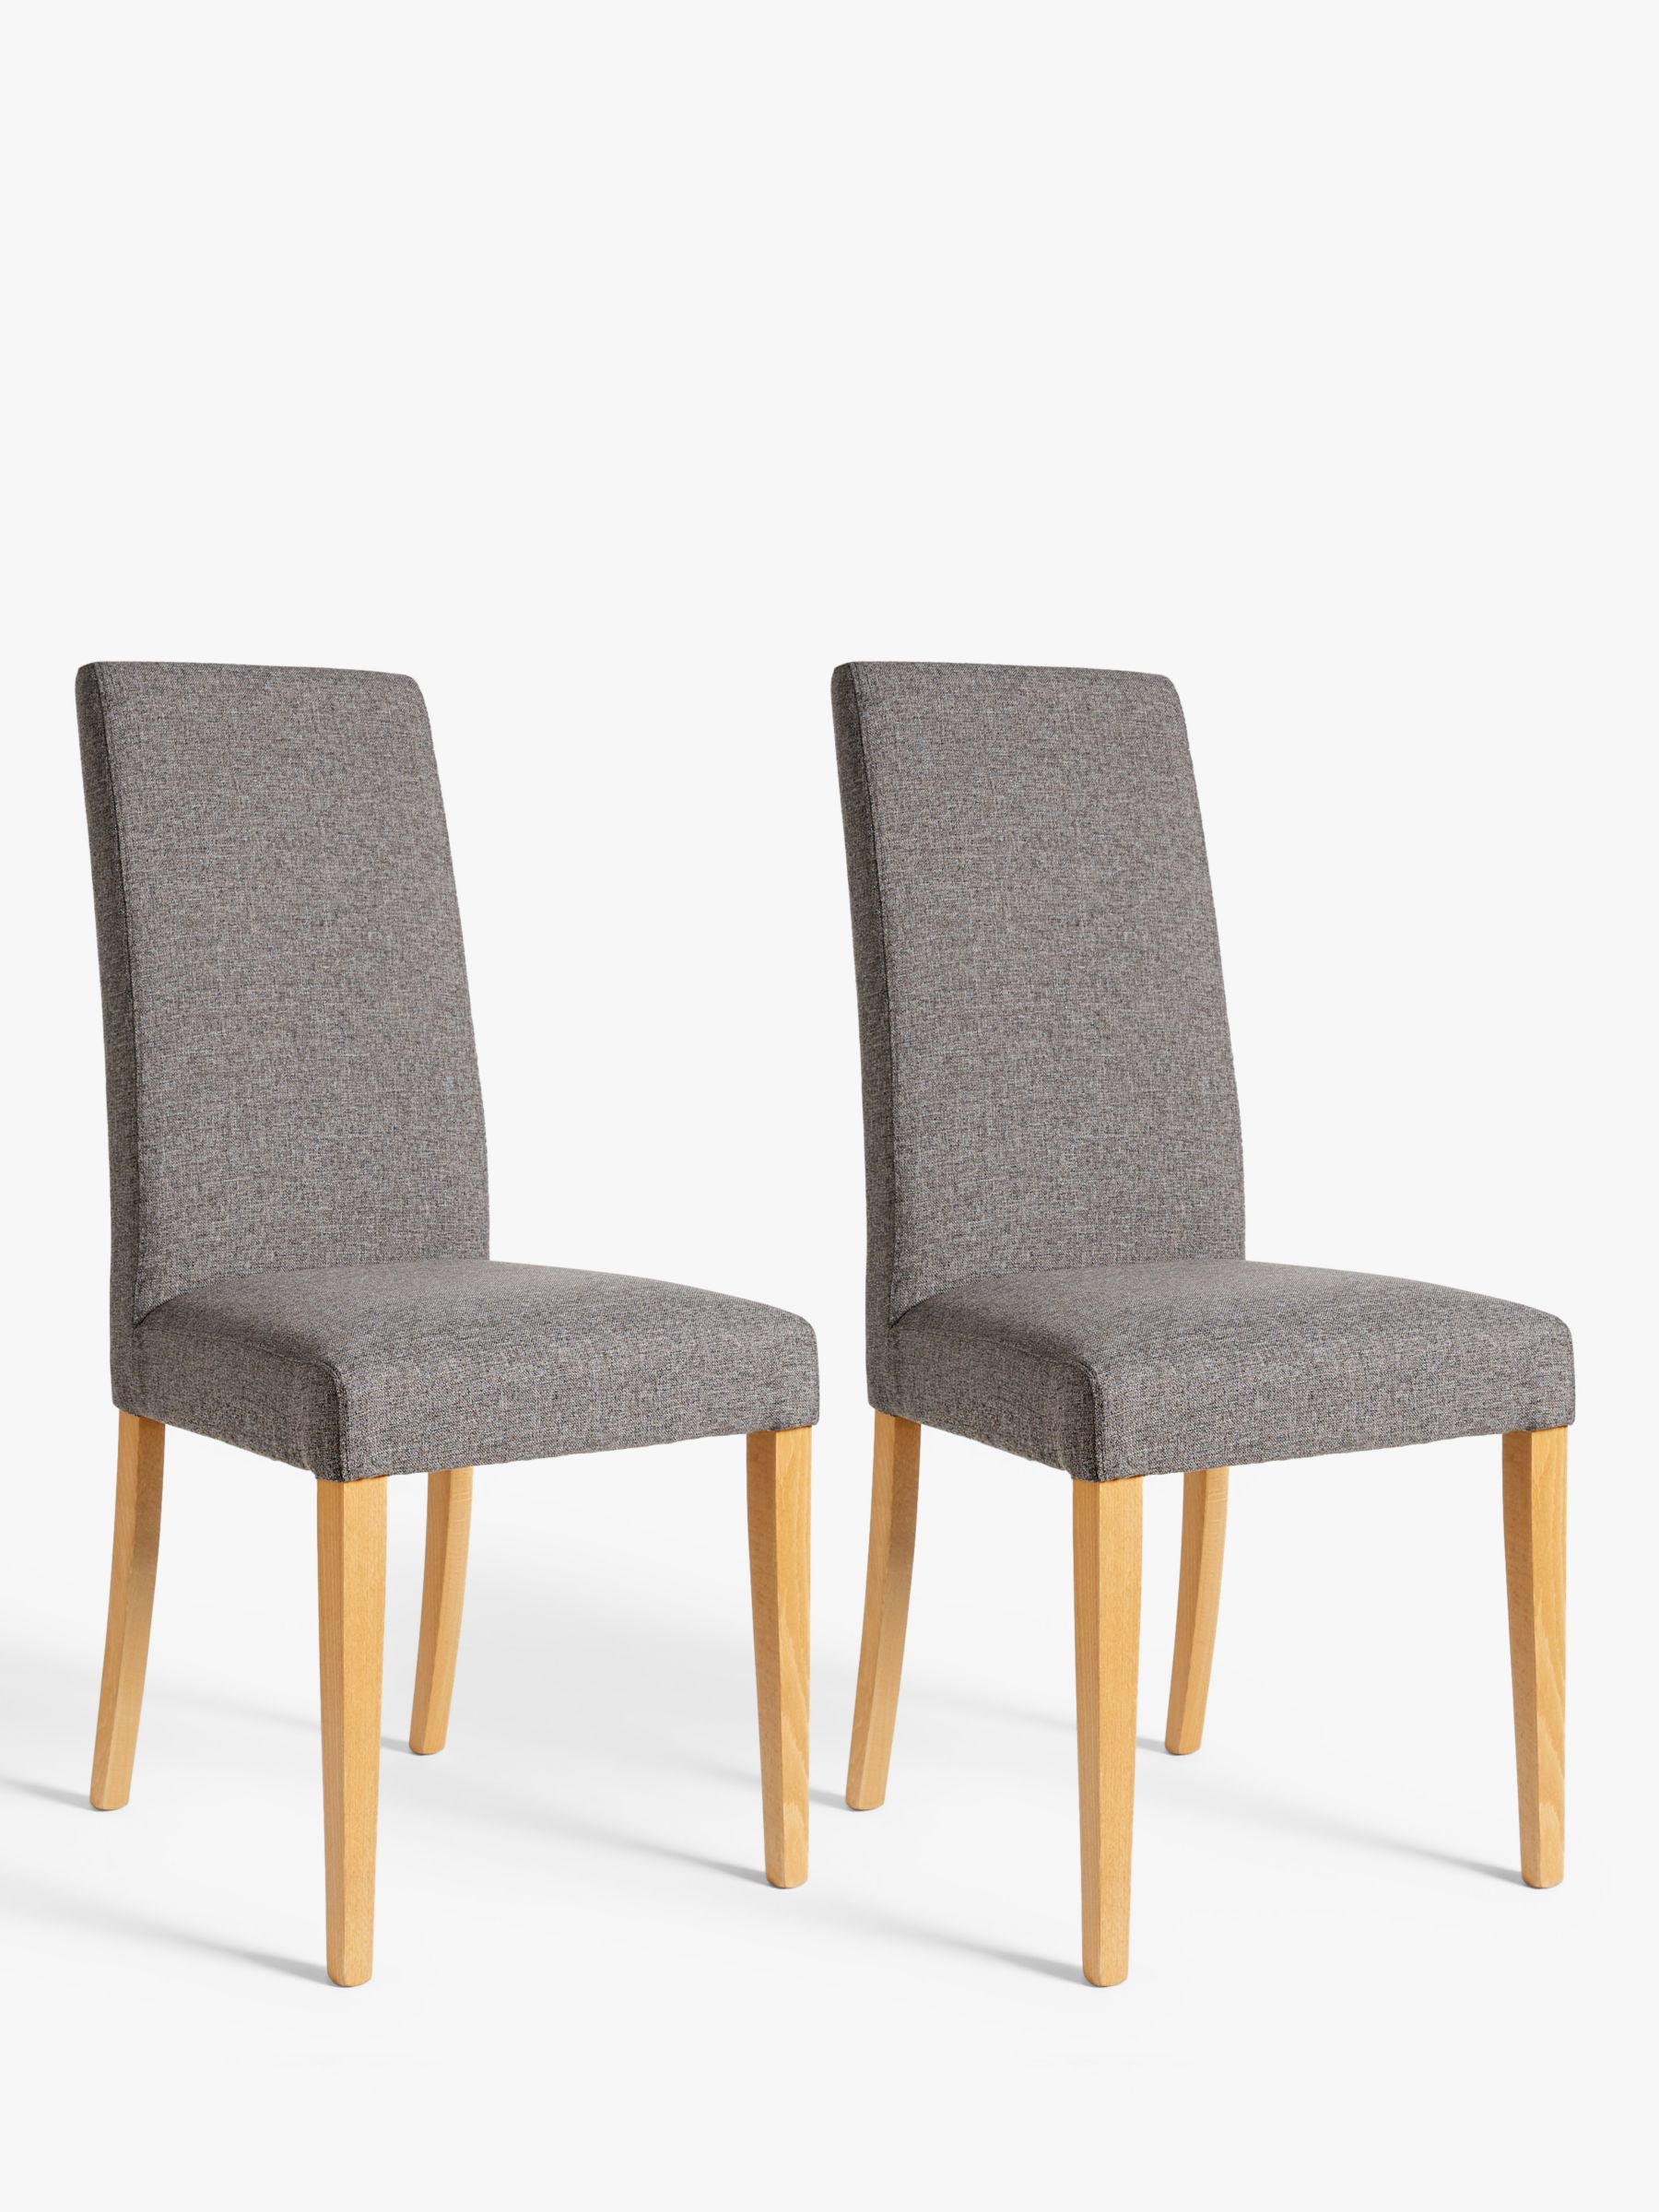 ANYDAY John Lewis & Partners Lydia Dining Chairs, Set of 2, FSC-Certified (Beech Wood), Grey